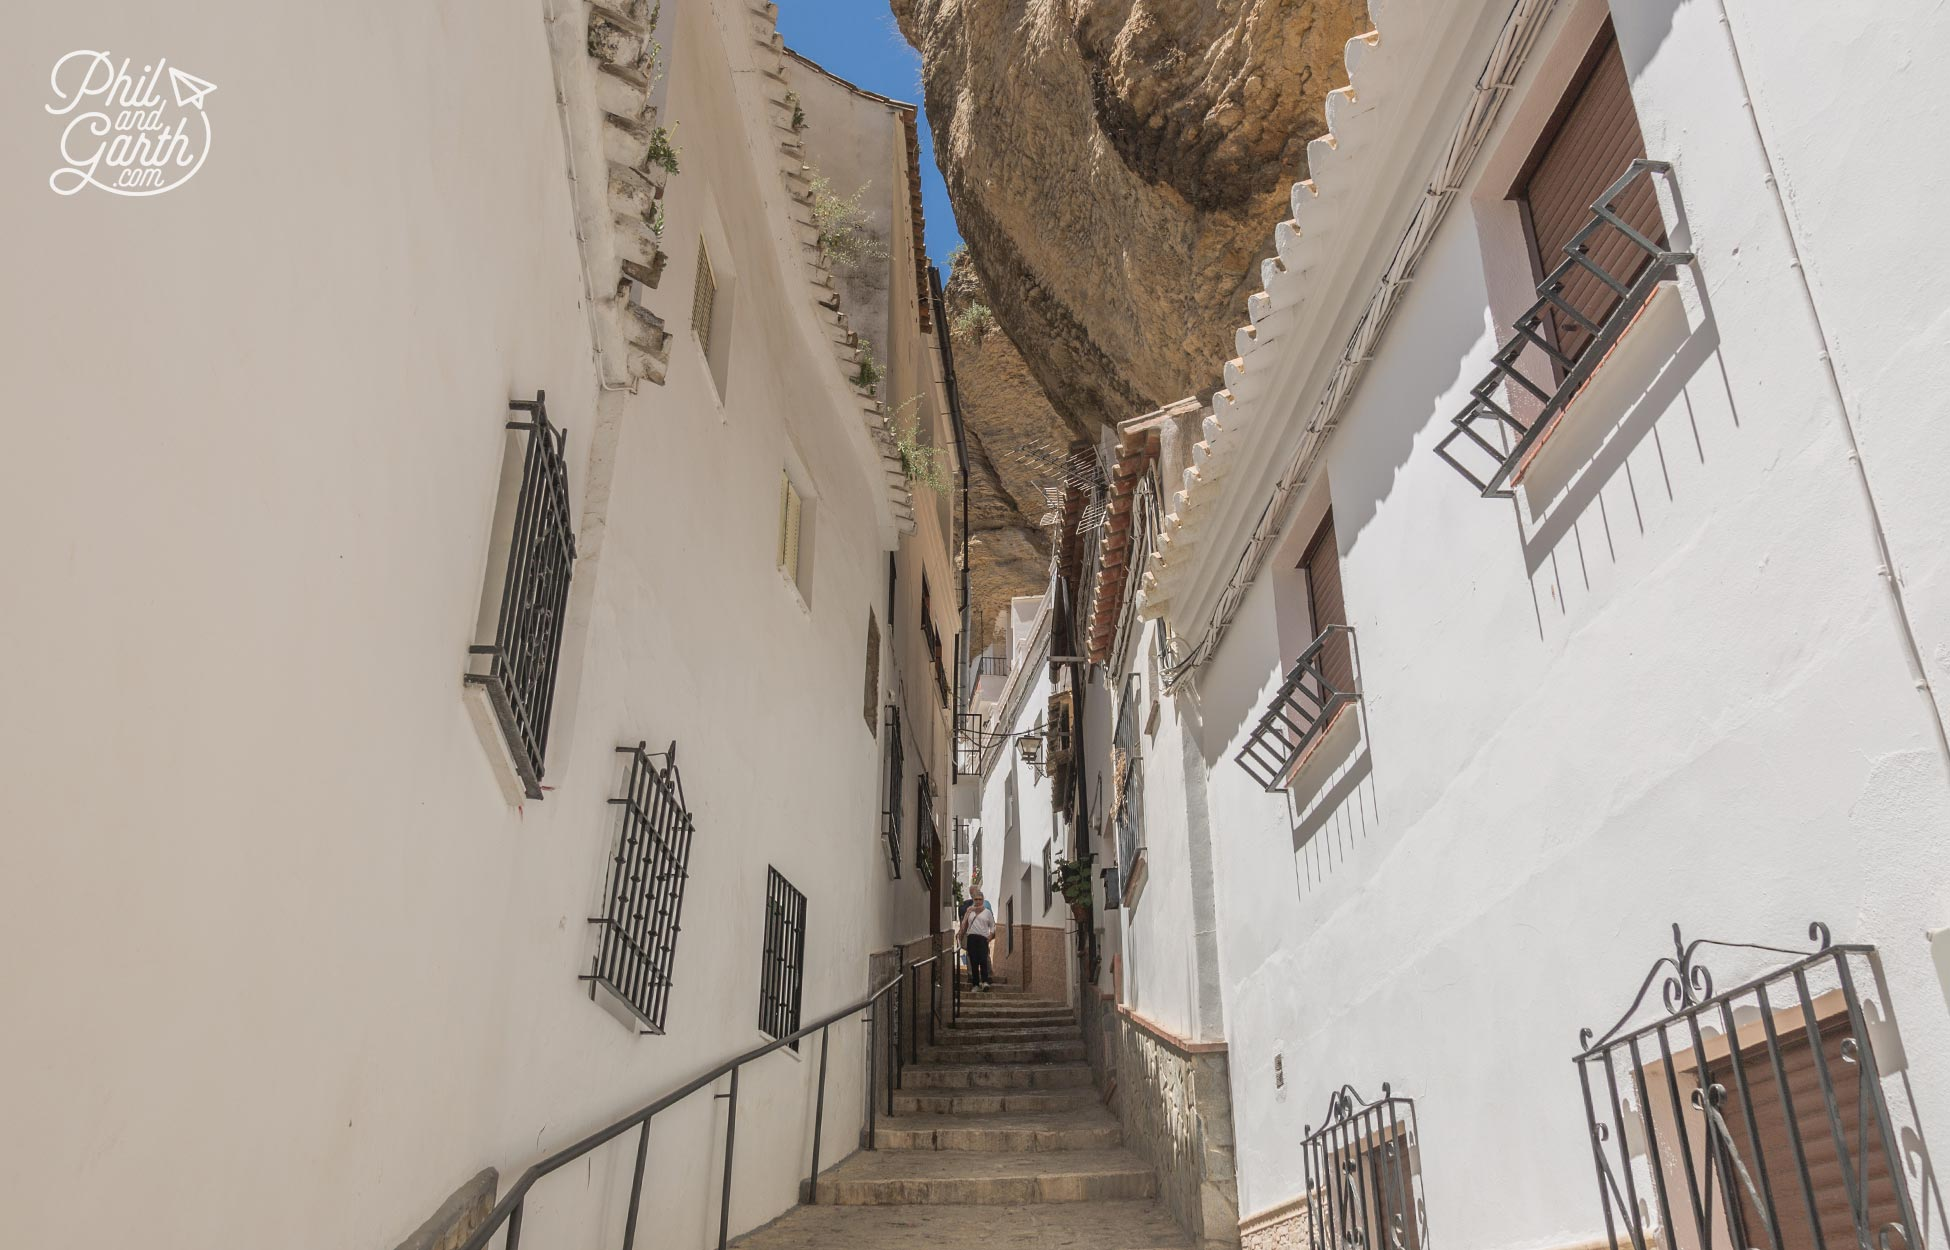 Calle Herrería is the oldest street in Setenil de las Bodegas